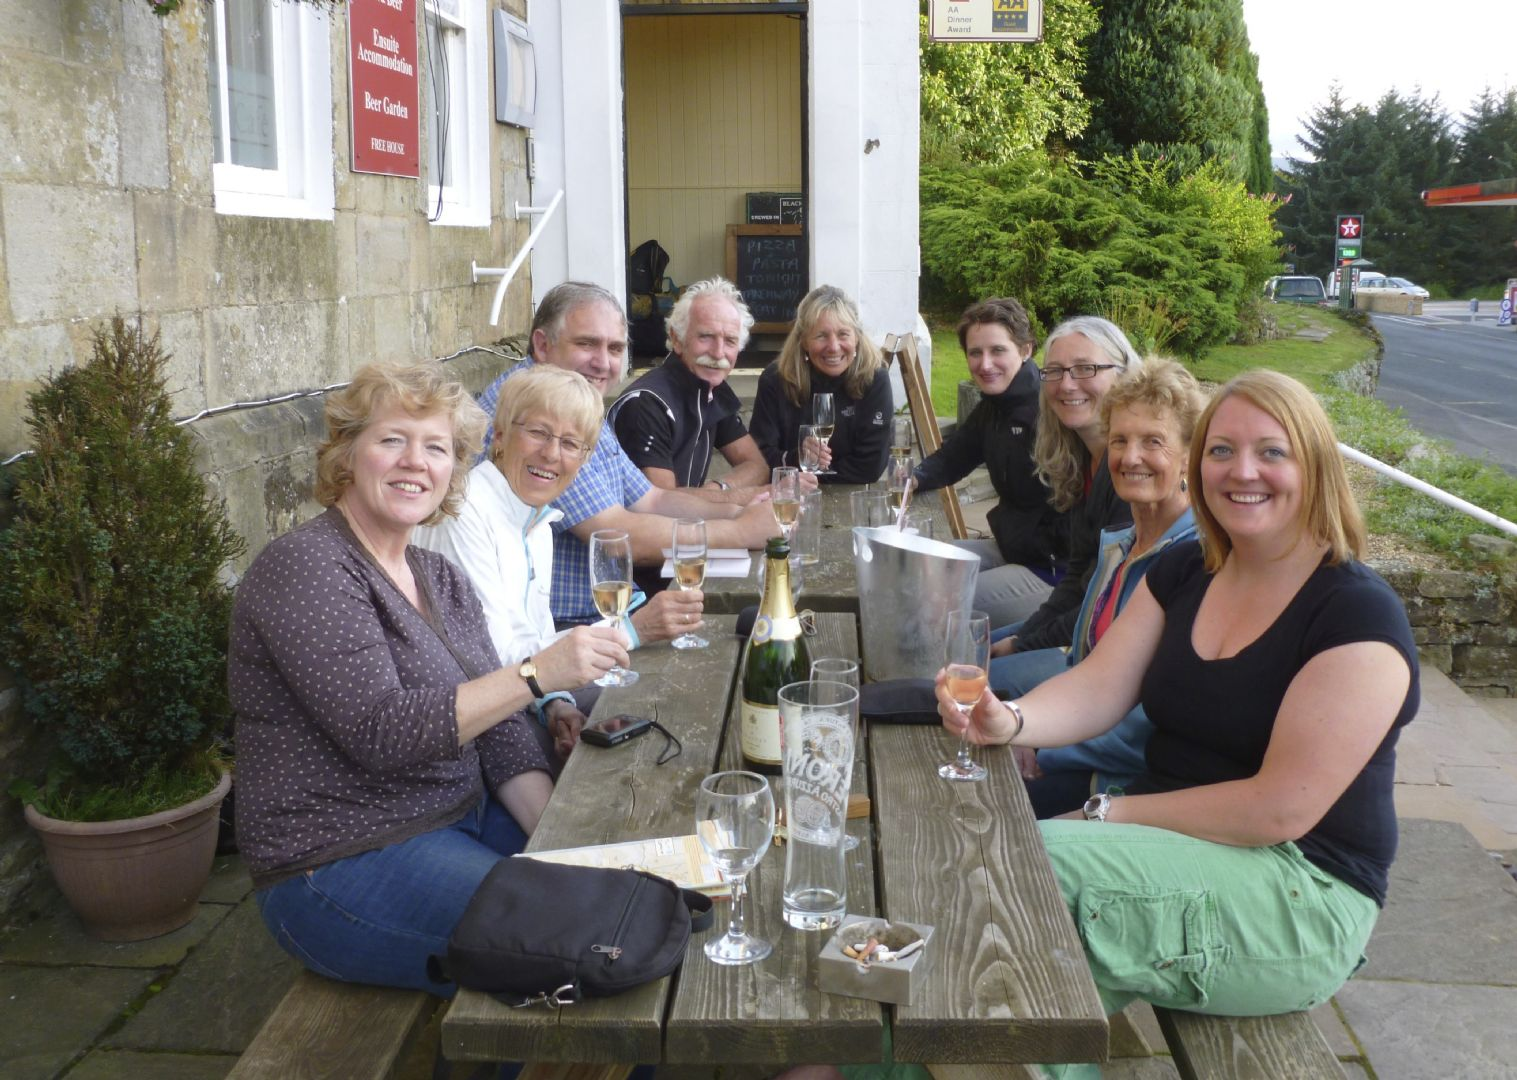 _Customer.36813.6980.jpg - UK - C2C - Coast to Coast 3 Days Cycling - Self-Guided Leisure Cycling Holiday - Leisure Cycling